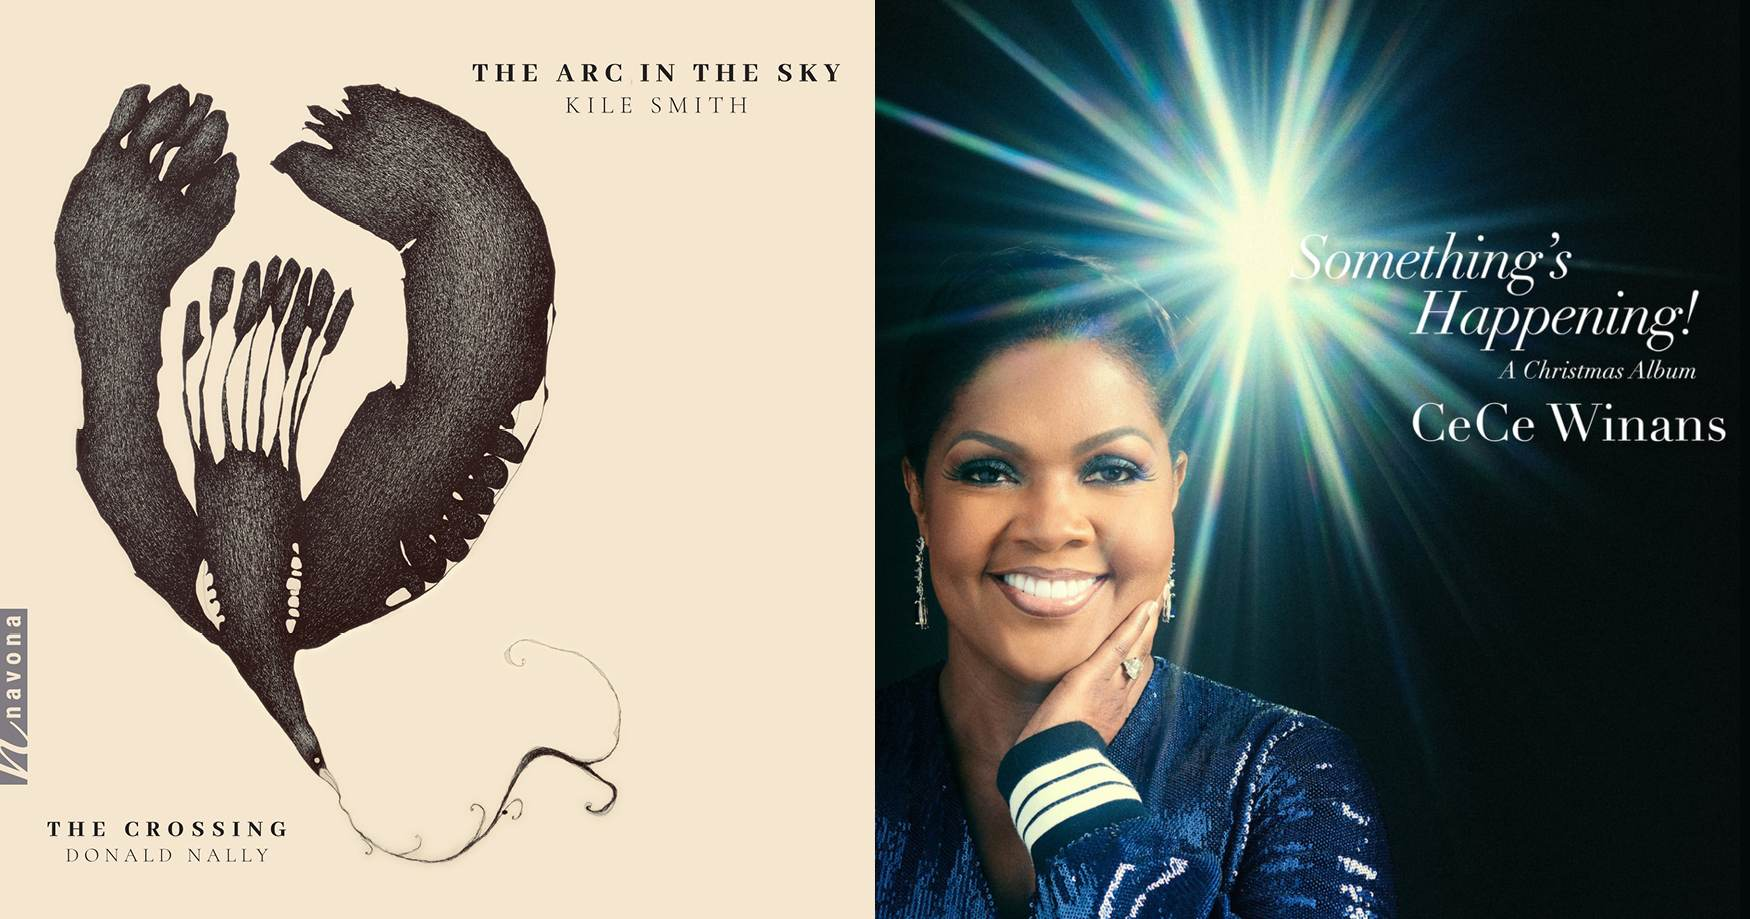 Cece Winans Christmas Album 2020 Reaching New Heights: The 2020 GRAMMY Award Nominations   PARMA